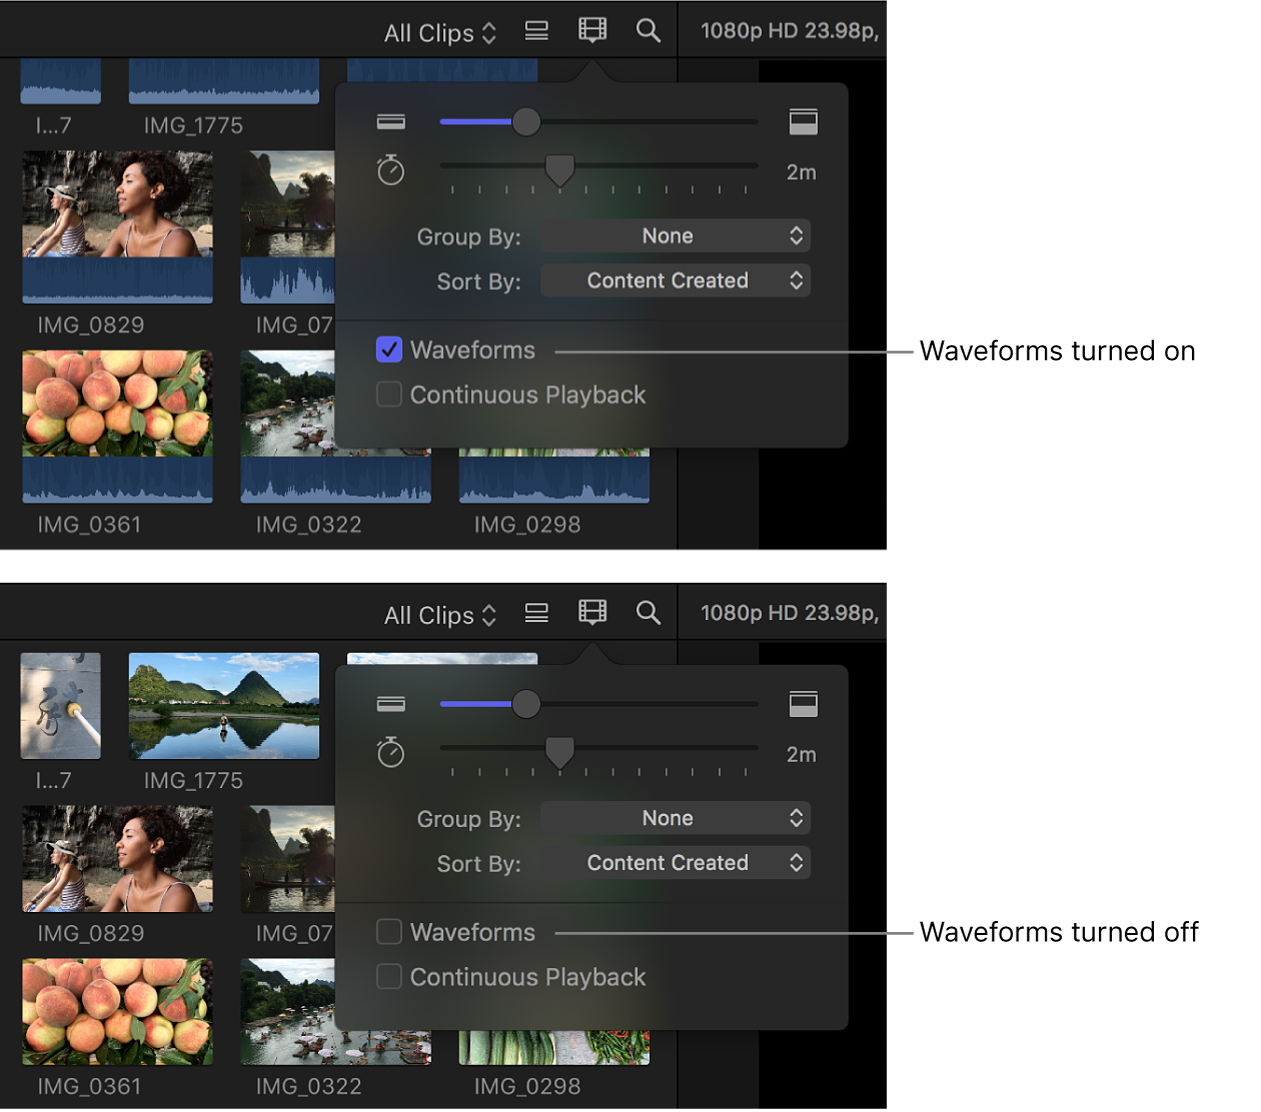 Filmstrips in the browser before and after audio waveforms are turned off using the Waveforms checkbox